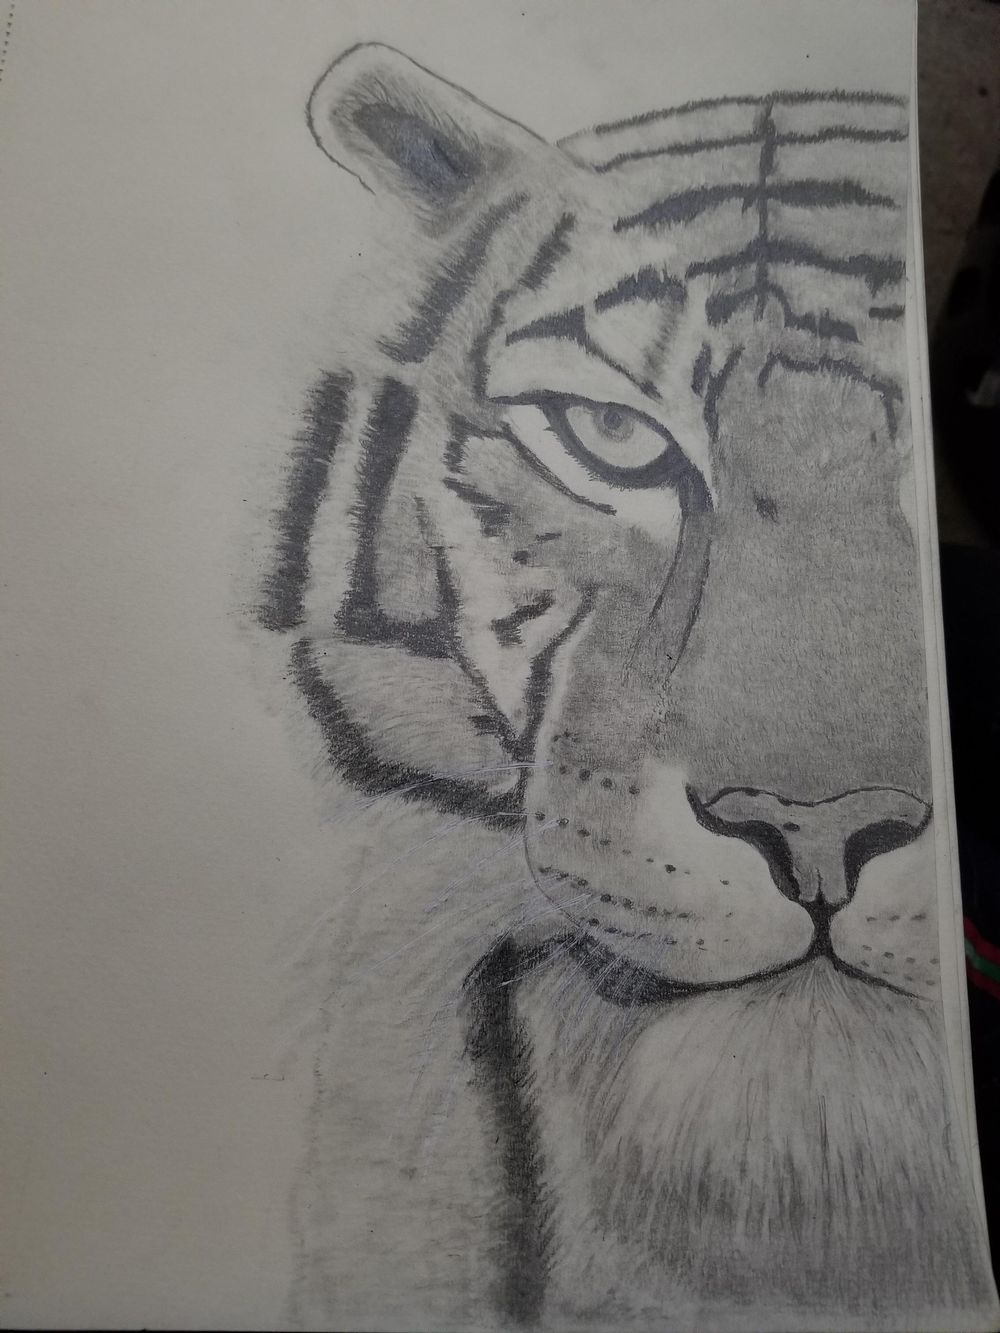 kitty graphite pencil - image 1 - student project